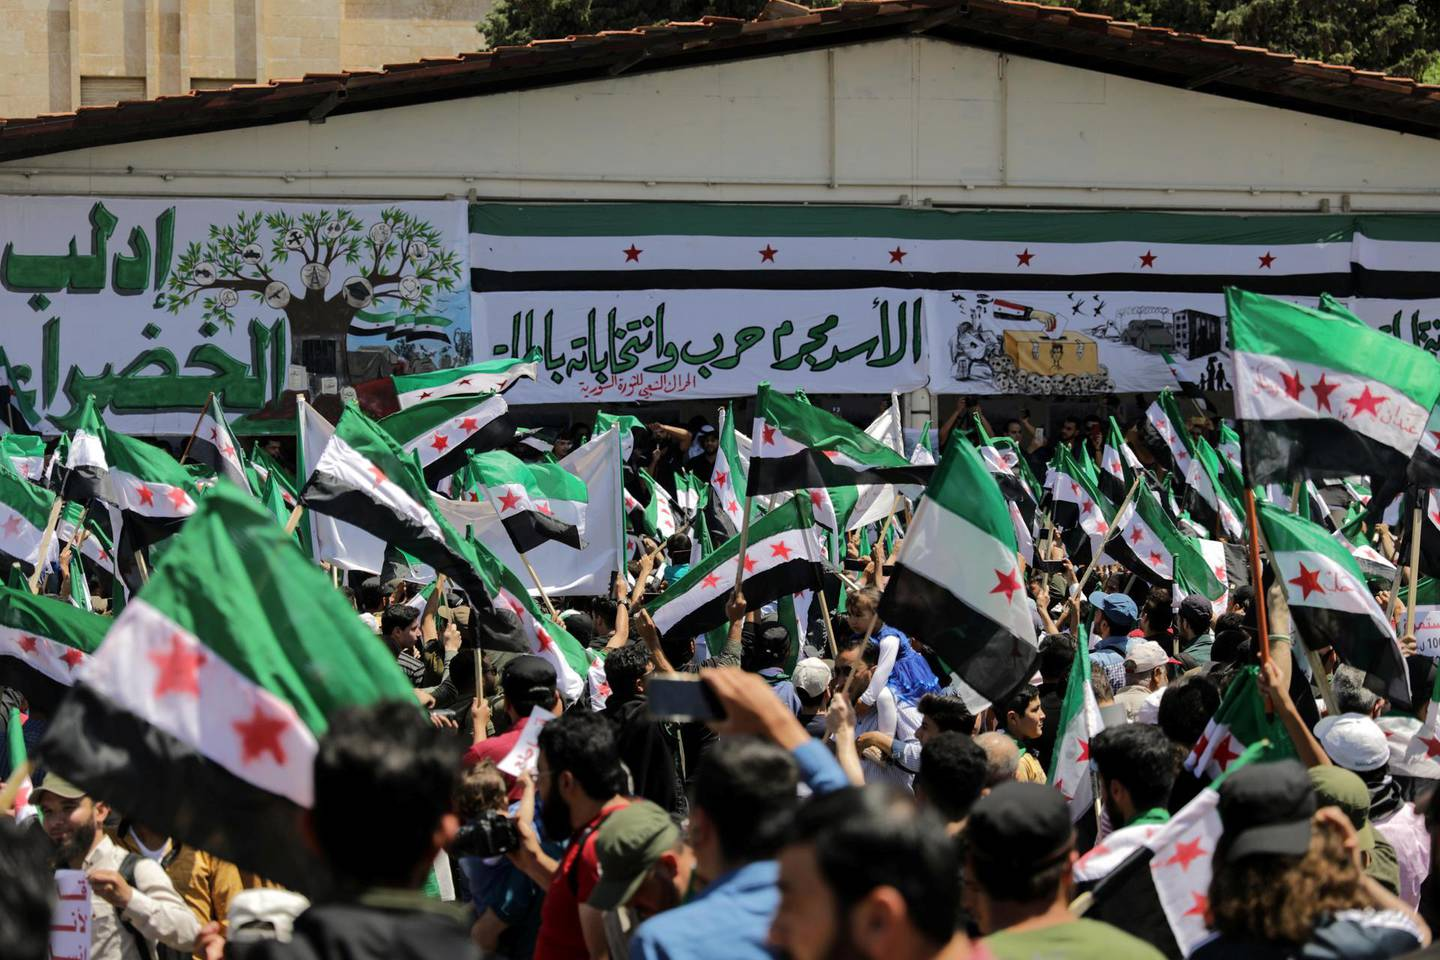 People take part in a demonstration against Syria's President Bashar al-Assad and presidential elections, in the opposition-held Idlib, Syria May 26, 2021. REUTERS/Khalil Ashawi